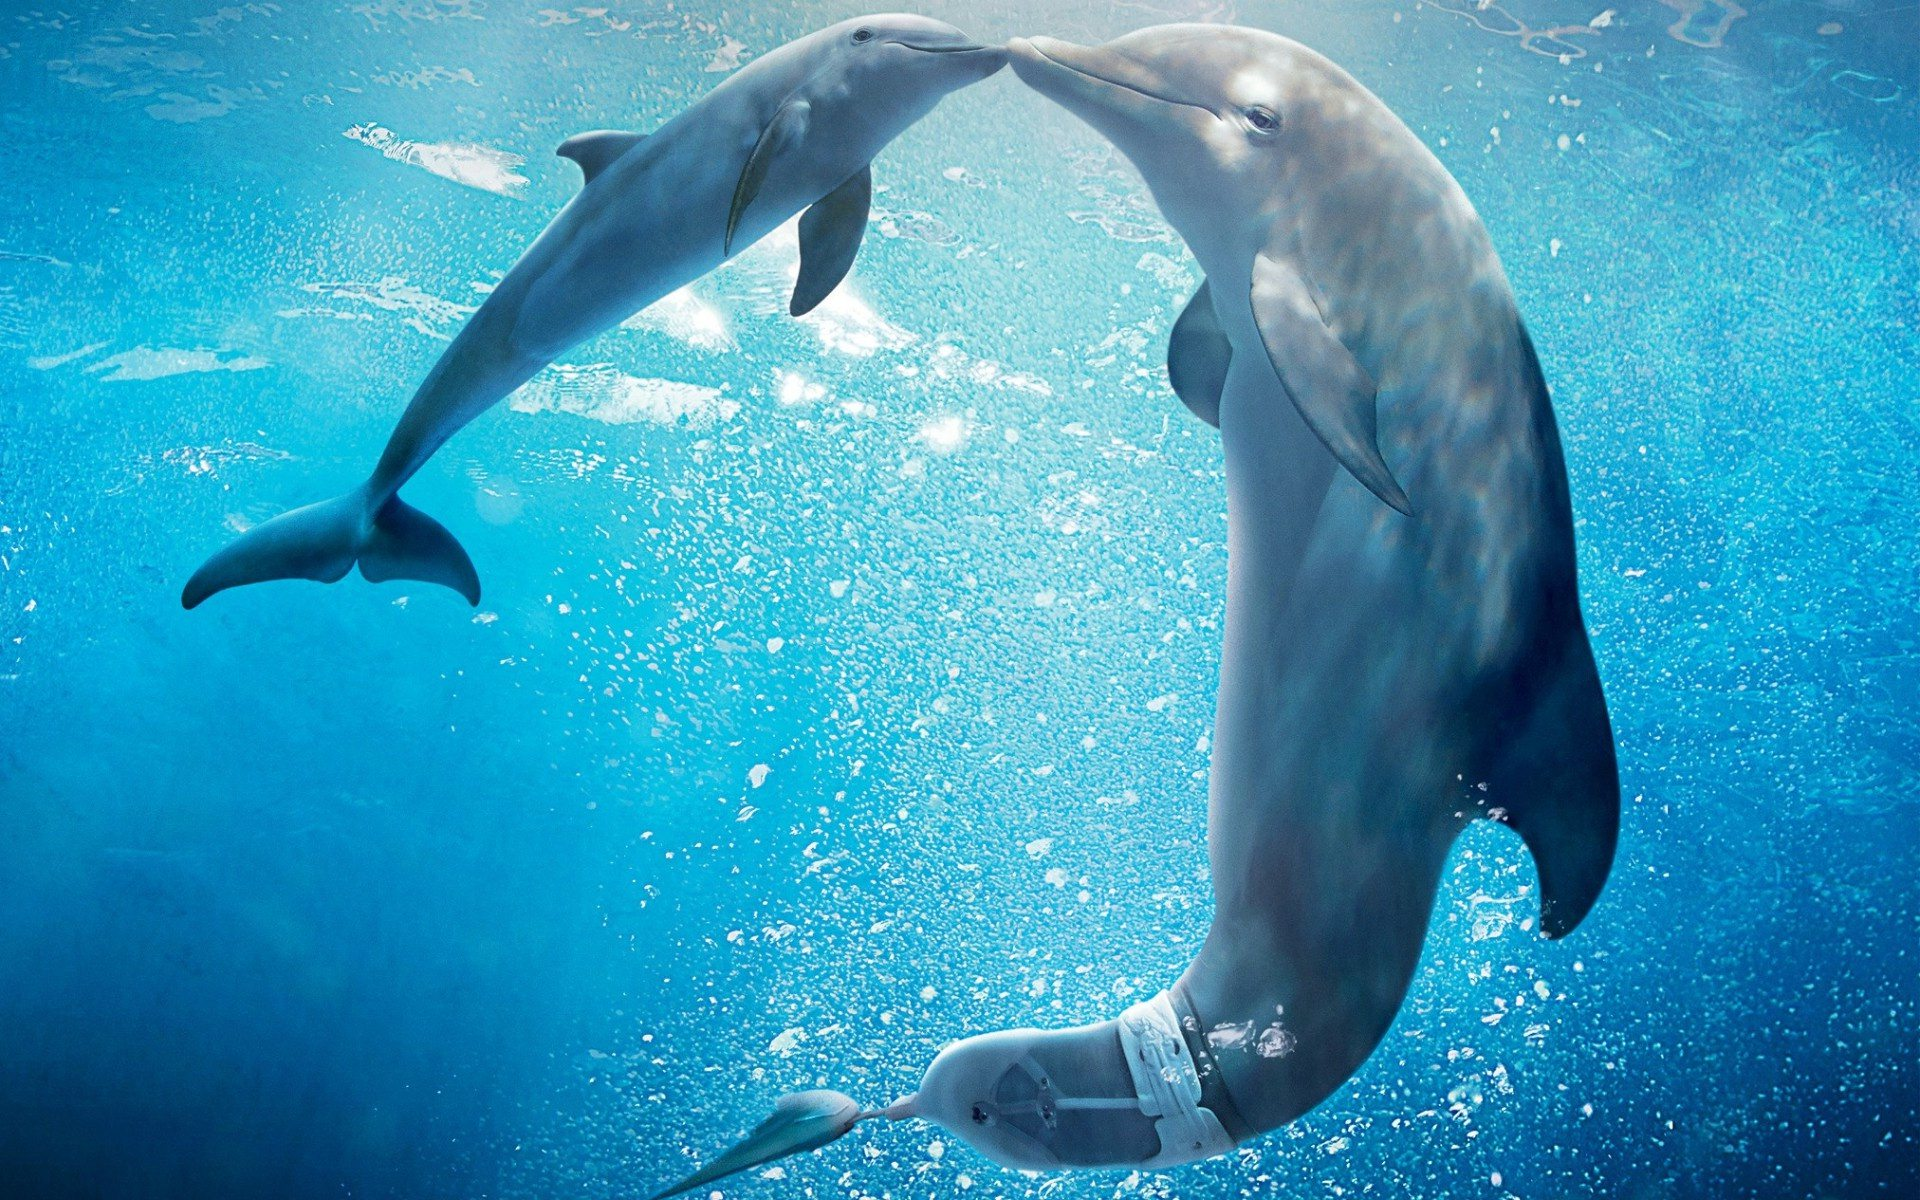 dolphins kiss underwater